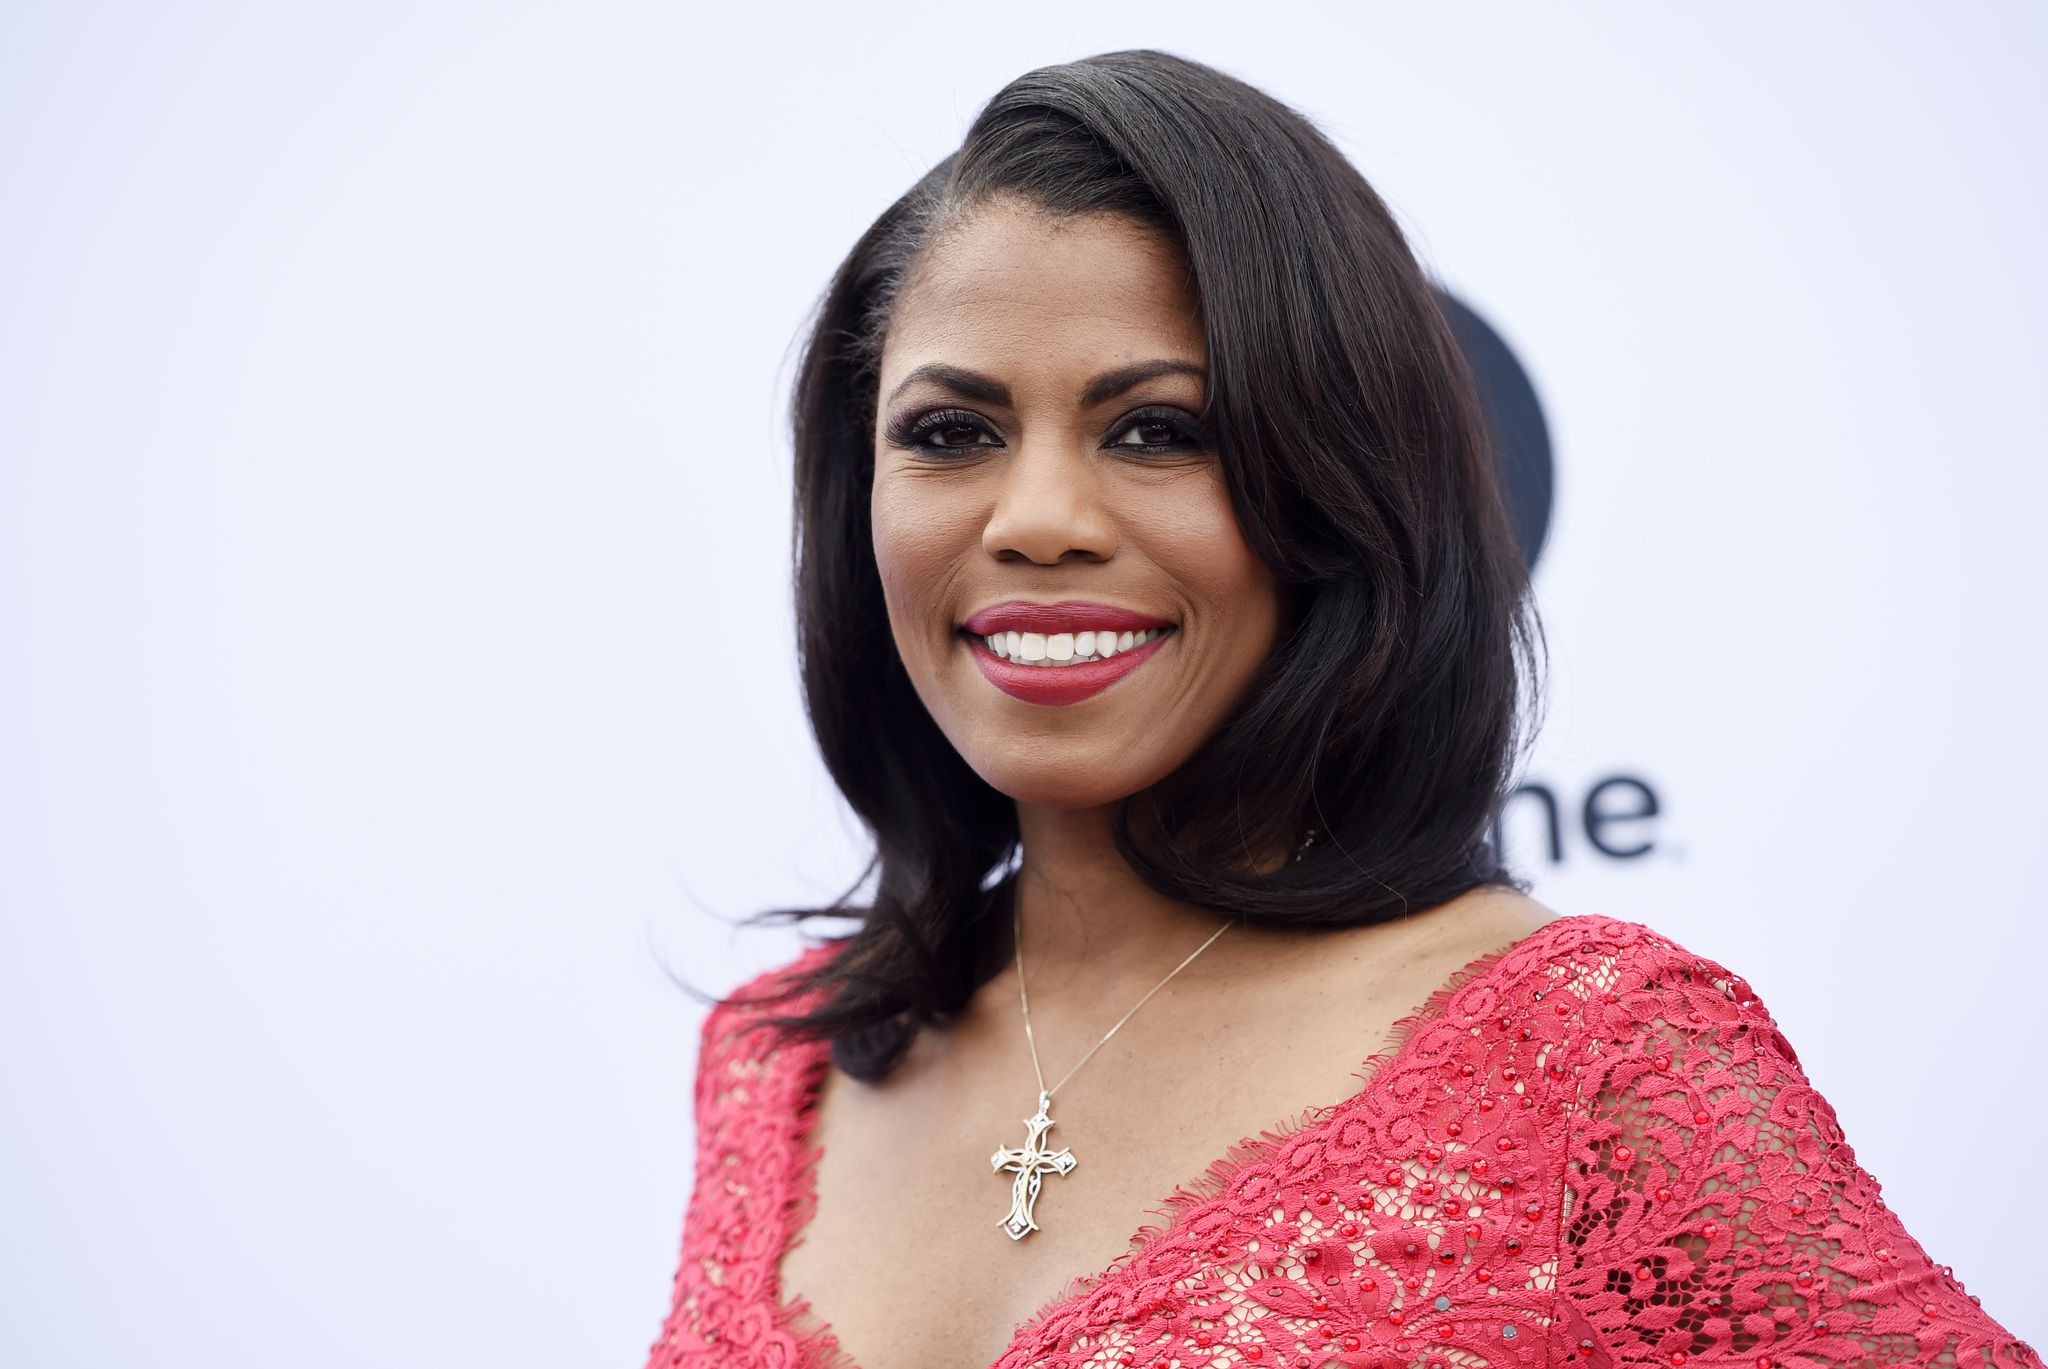 White House slams Omarosa's book as 'riddled with lies'